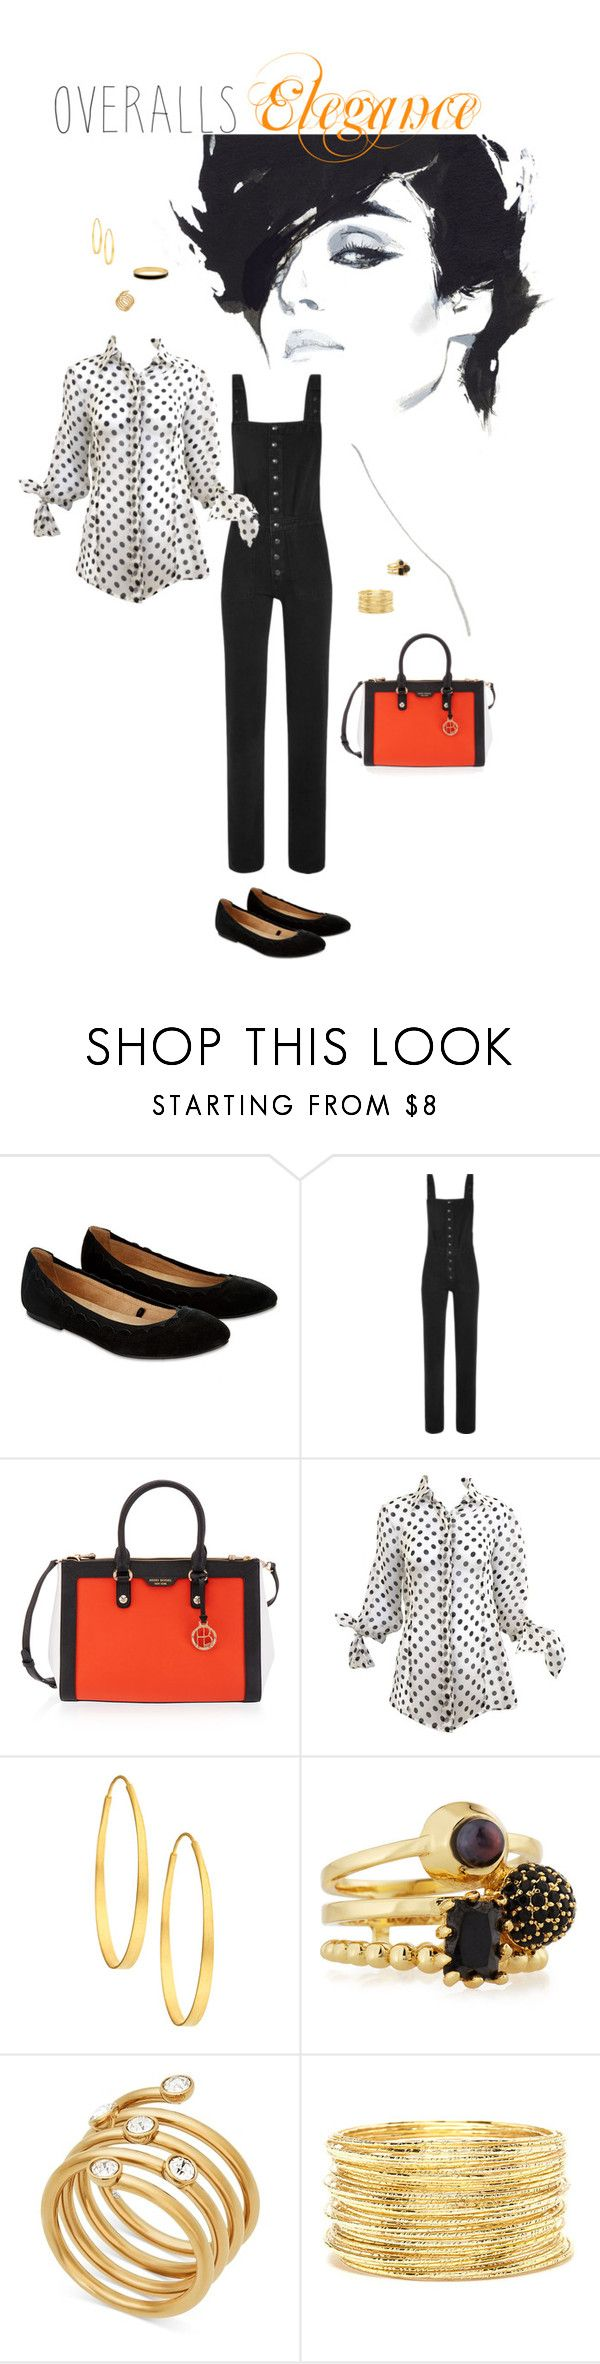 """""""Overalls Elegance"""" by anitamauro ❤ liked on Polyvore featuring Accessorize, M.i.h Jeans, Henri Bendel, Arena CPH, Eddie Borgo, Michael Kors, Forever 21 and Halcyon Days"""